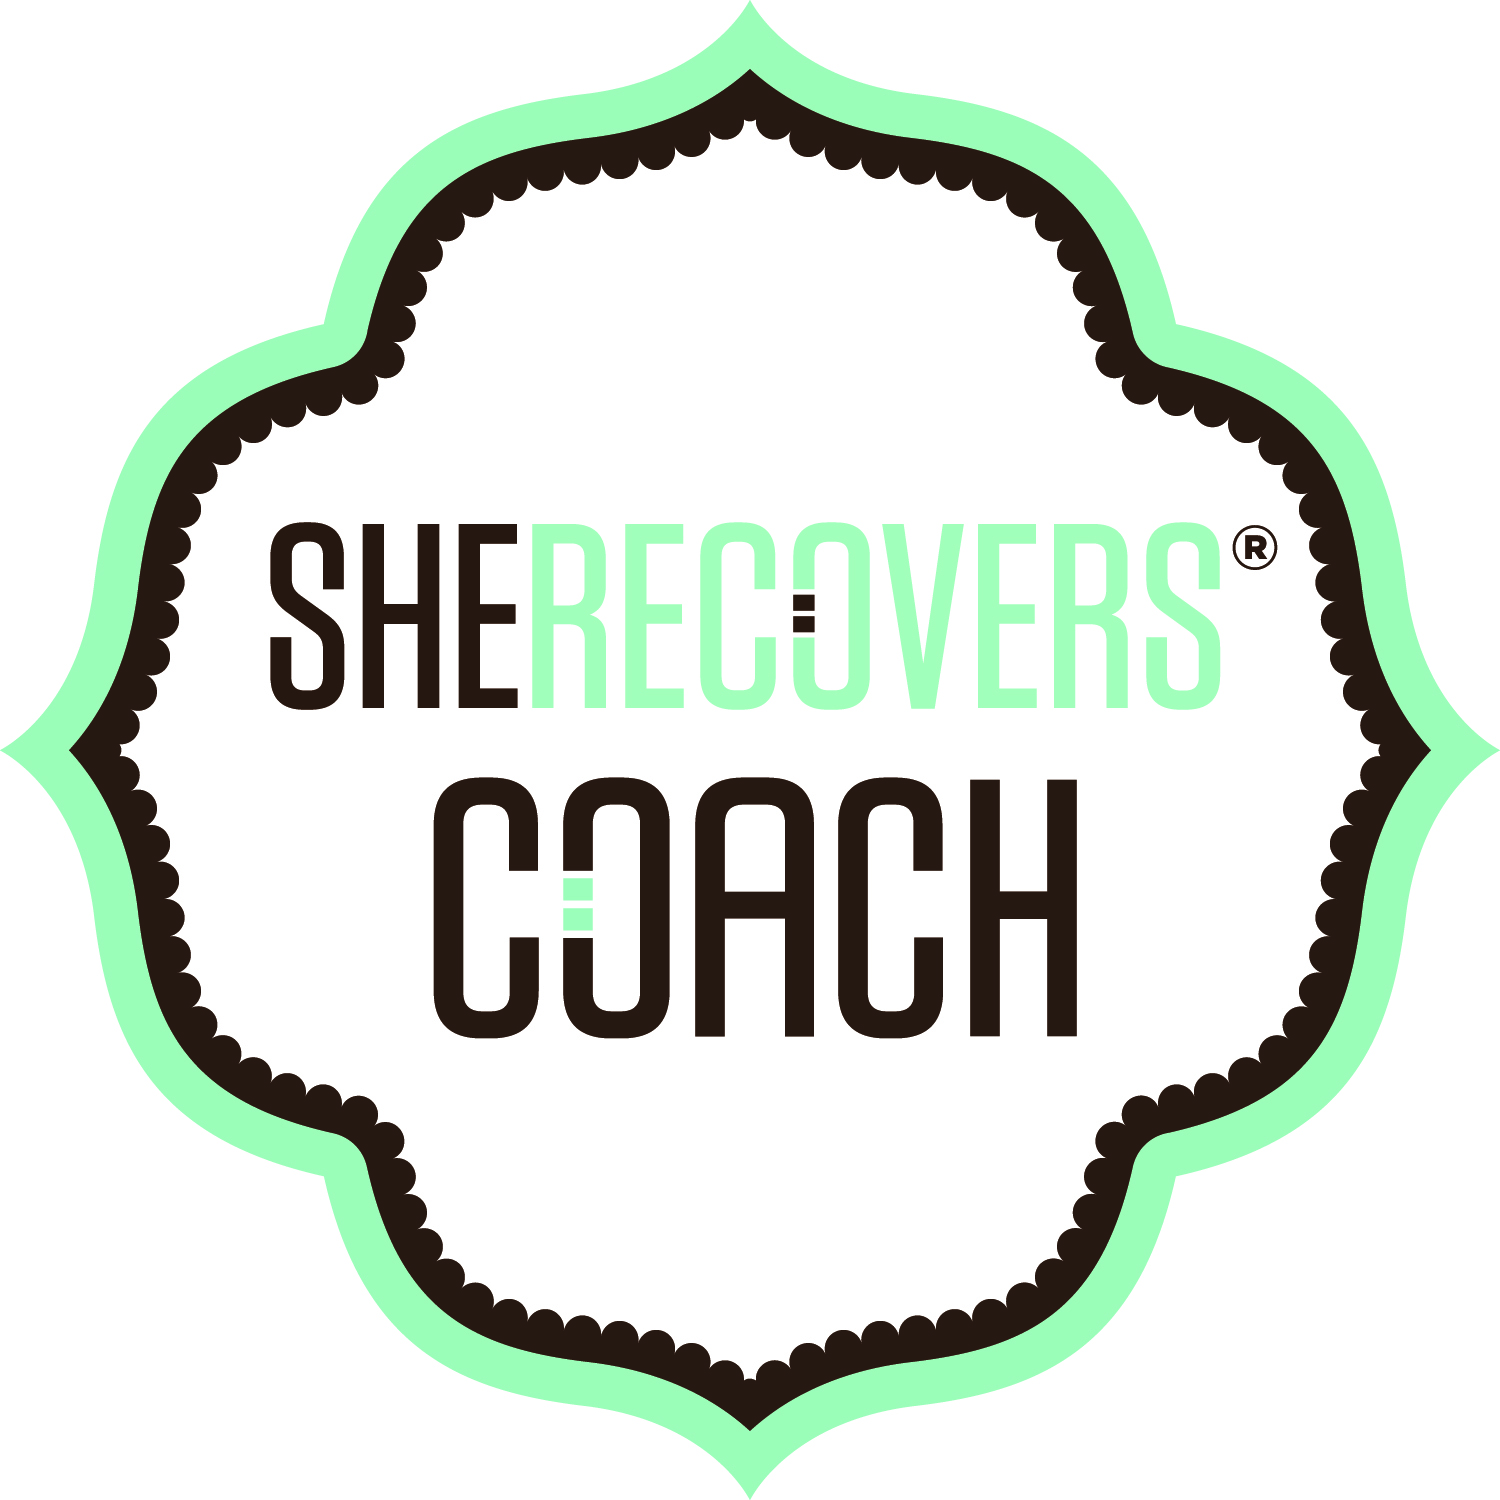 I am a SHE RECOVERS® Coach, - which means that I am trained in and my work aligns with the SHE RECOVERS® Intentions & Guiding Principles.SHE RECOVERS® is an international movement of self-identified women in or seeking recovery from a wide variety of issues, including substance use and eating disorders, other behavioral health issues, trauma, abuse, codependency, cancer, grief, low self-esteem, perfectionism, and other life challenges.